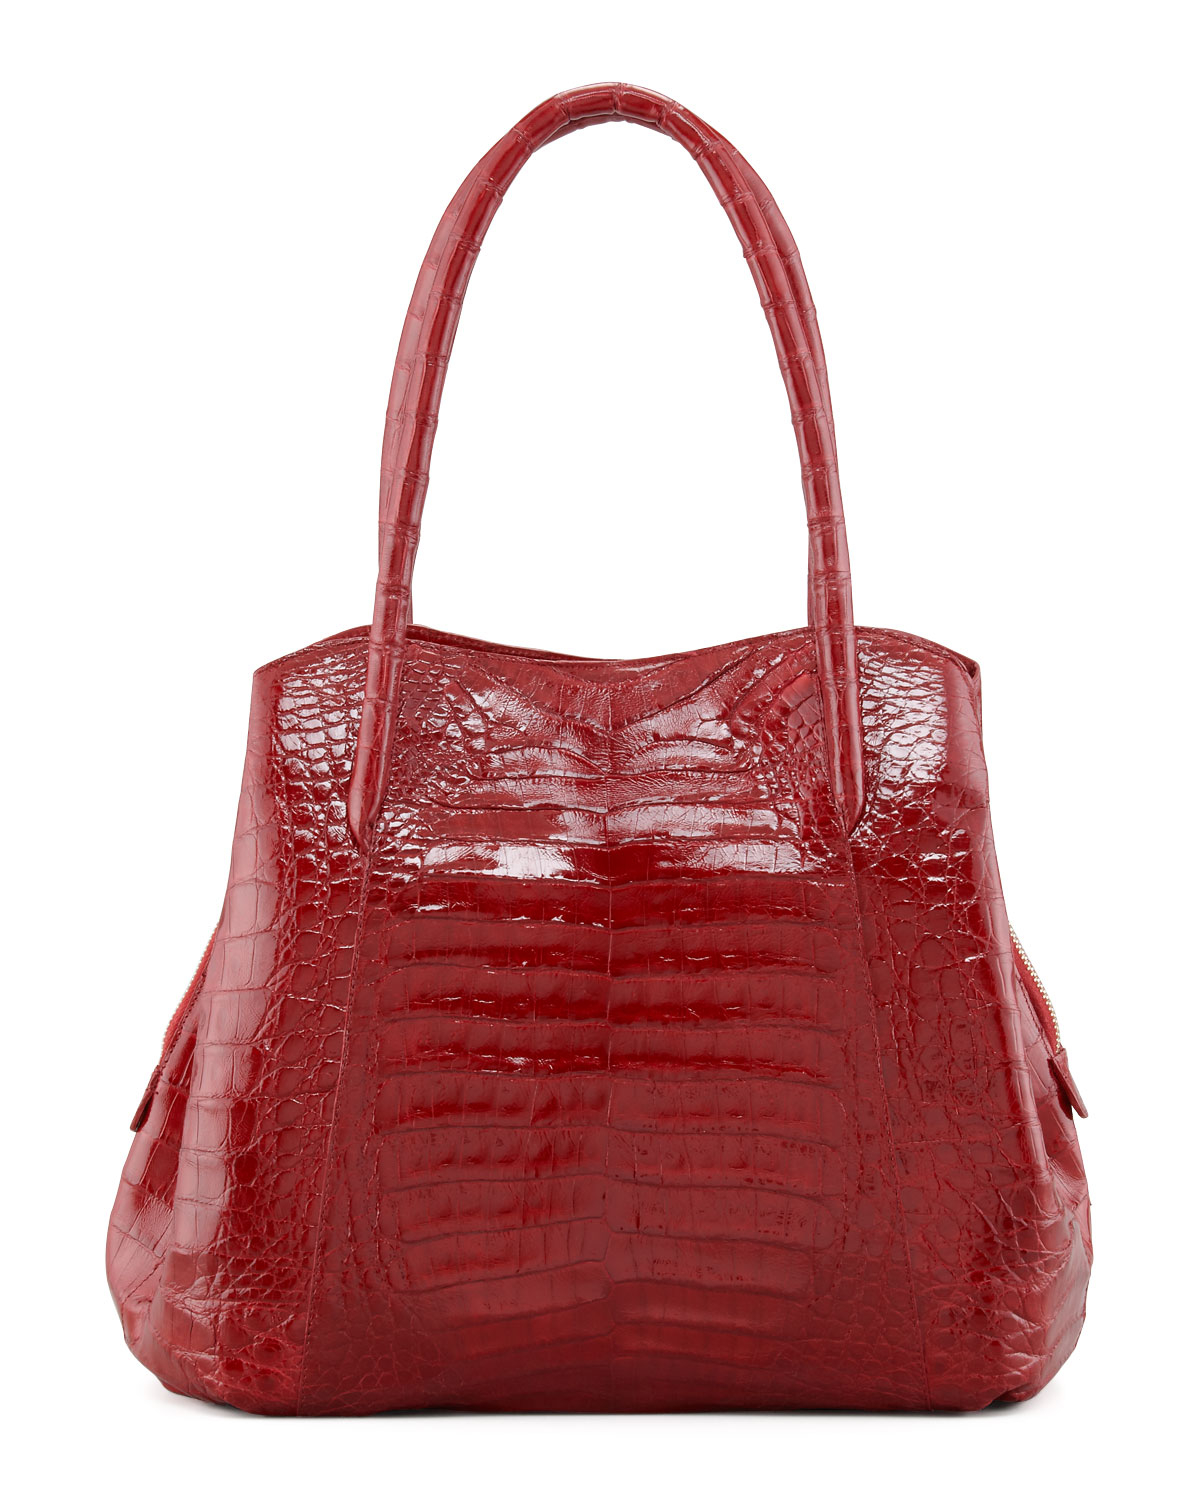 Nancy gonzalez shiny crocodile compartmentalized tote bag for Nancy gonzalez crocodile tote